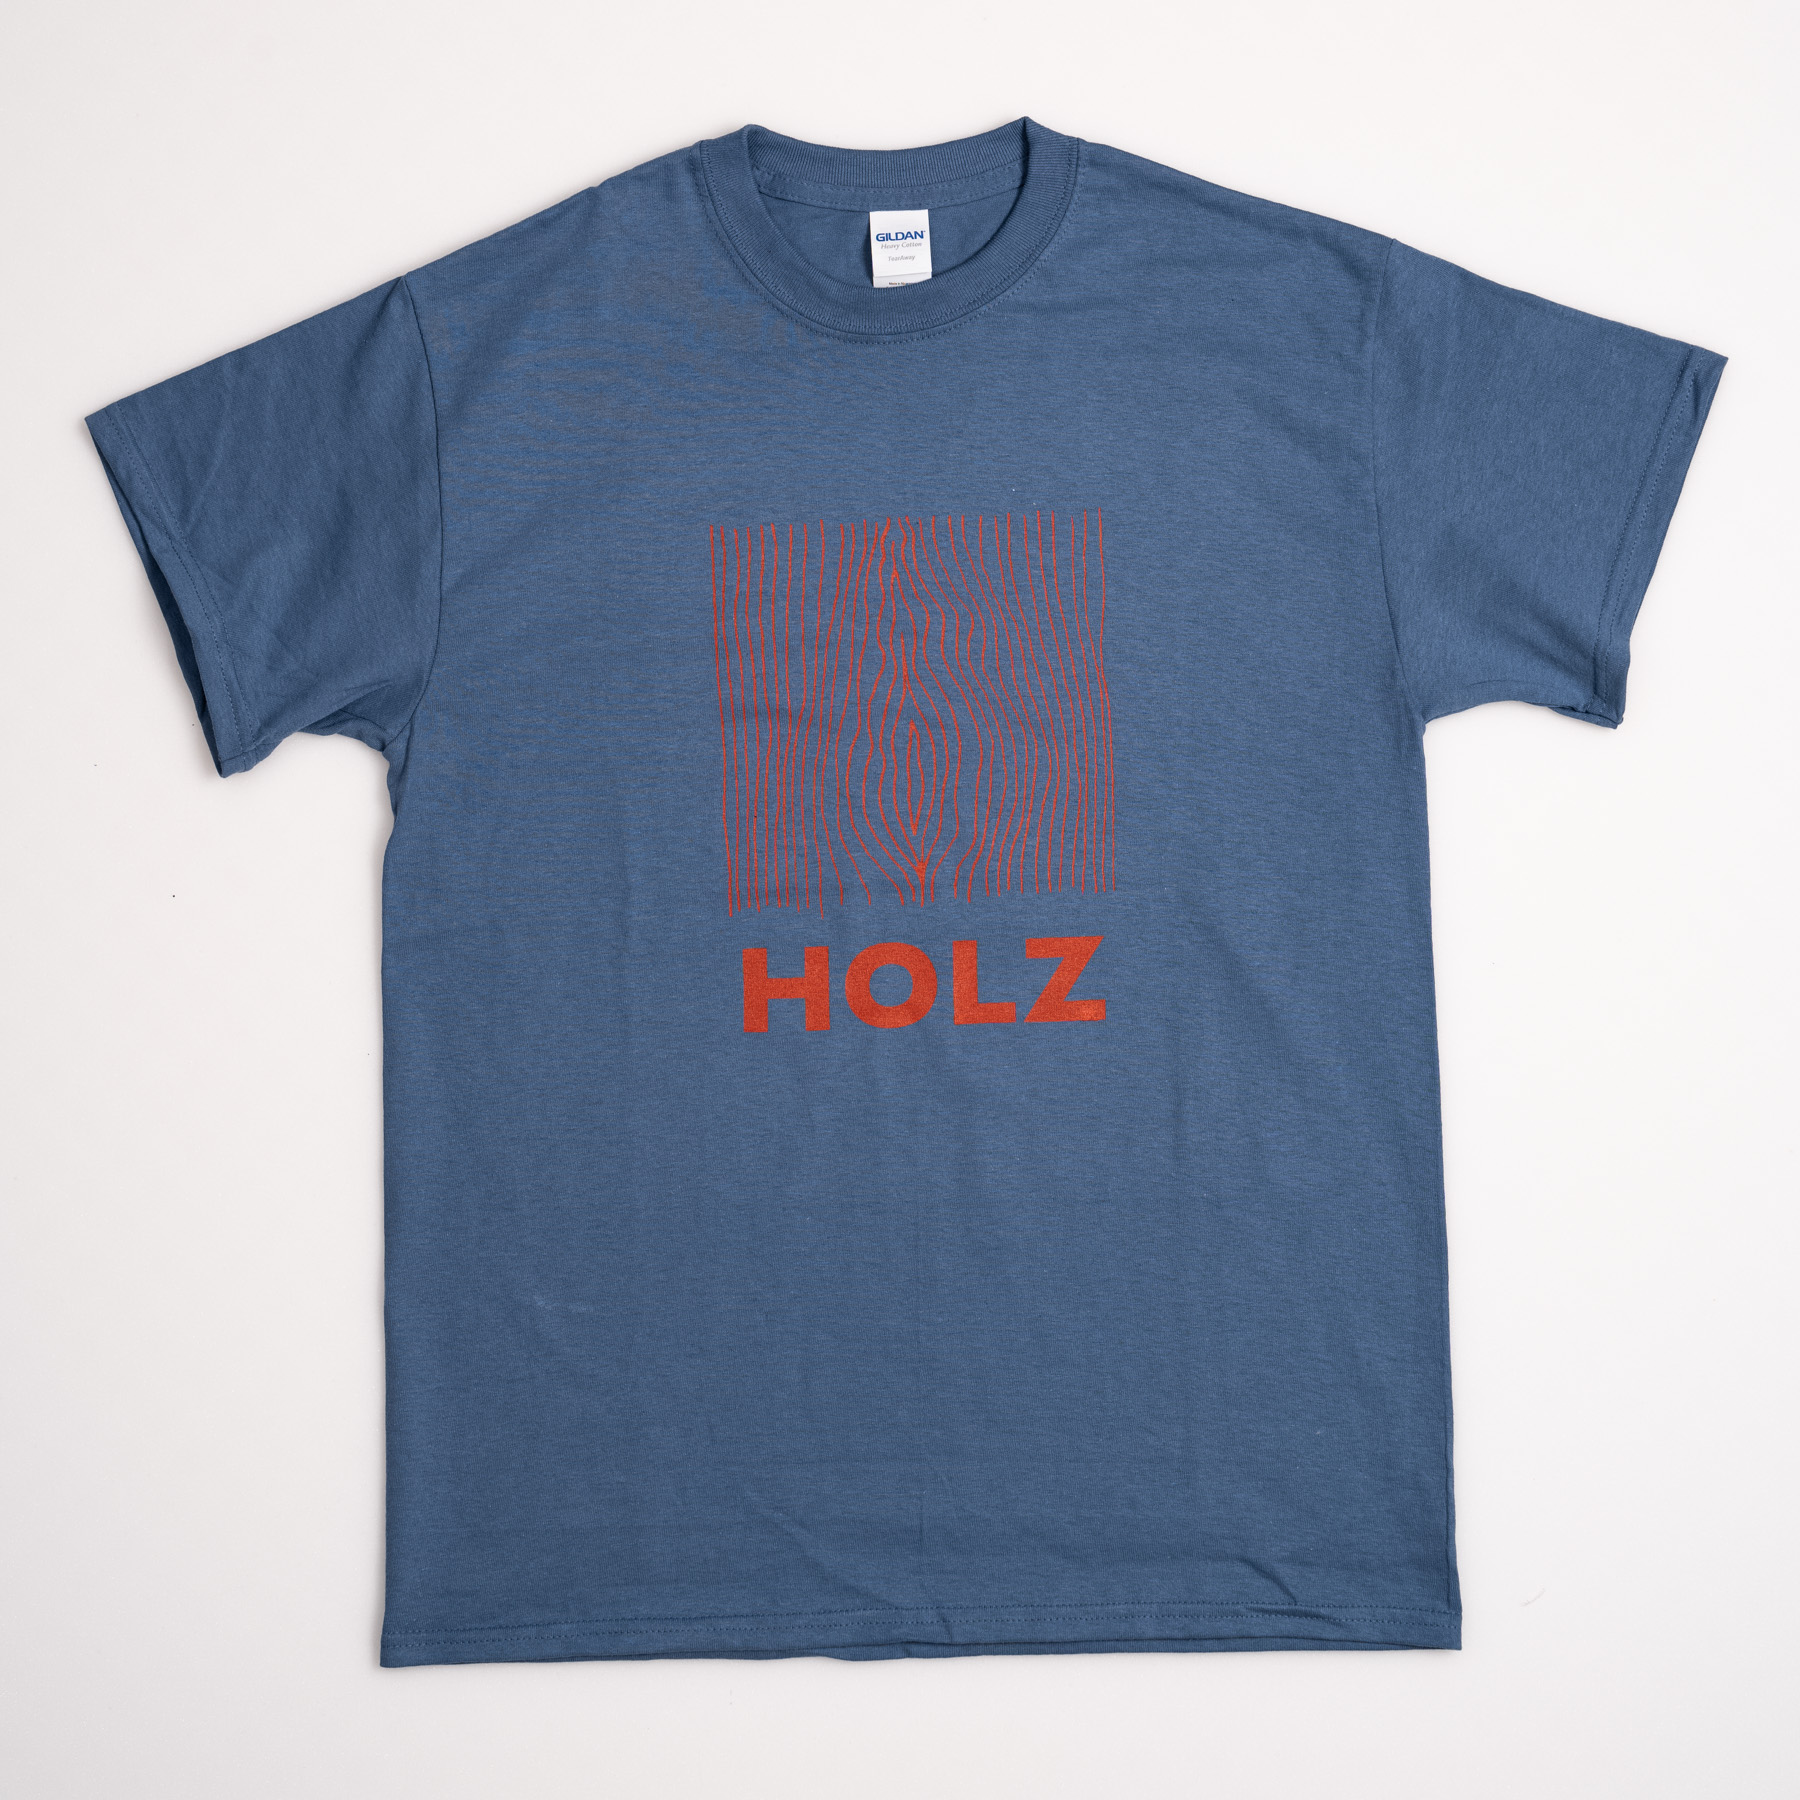 HOLZ Original T-Shirt Blue/Red 2